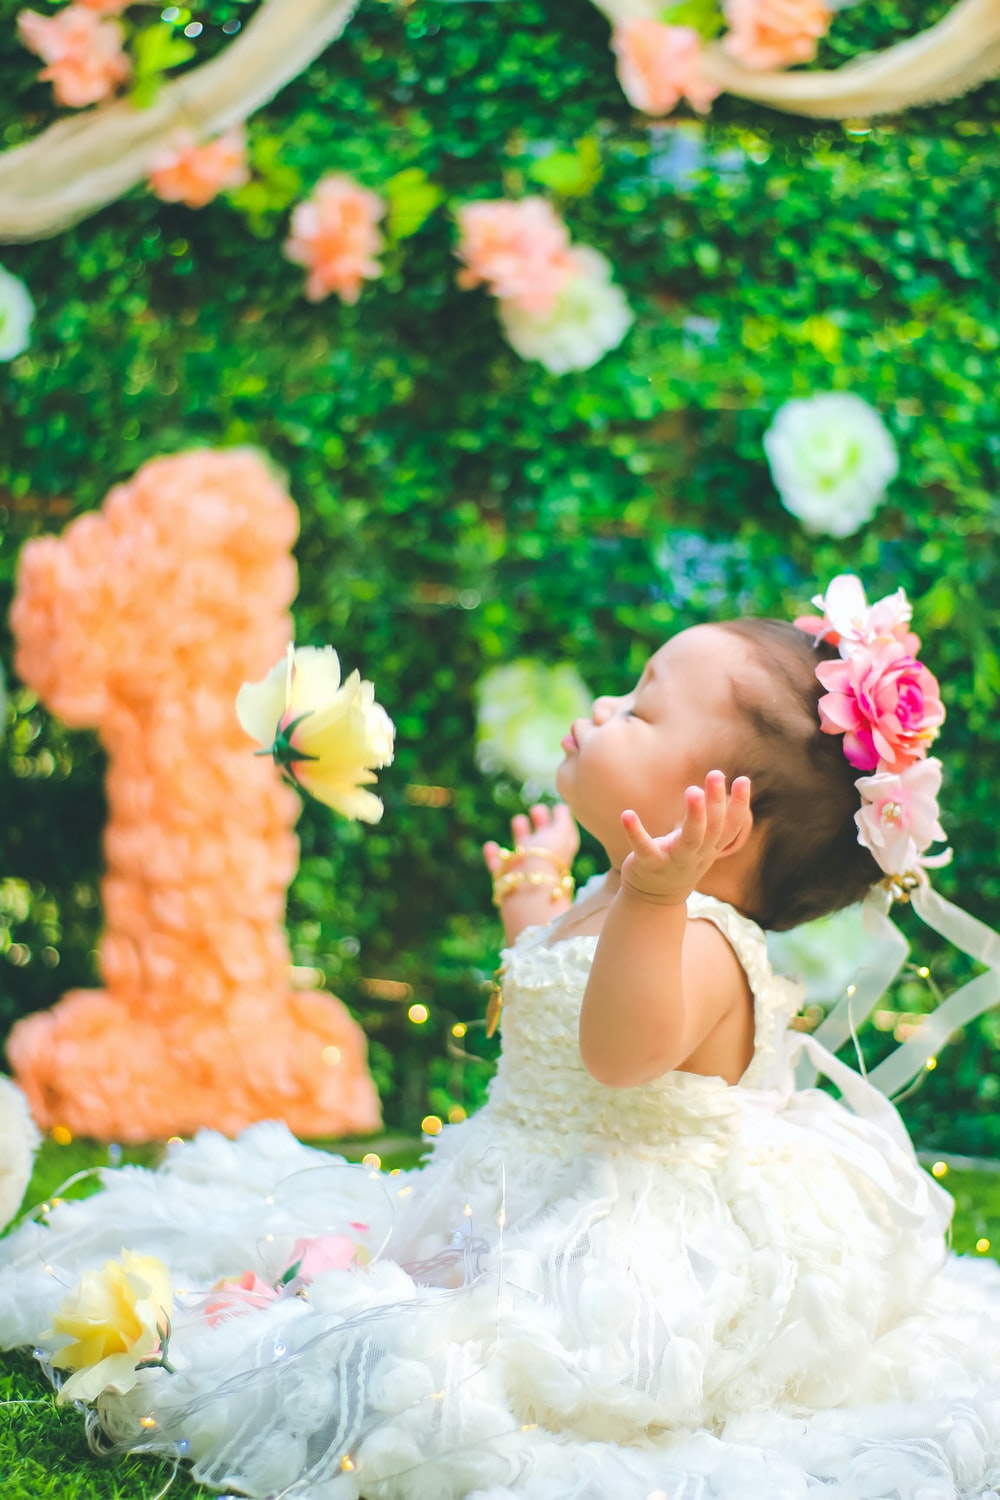 closed eyed baby girl wearing white gown sitting on grass and spreading her arms